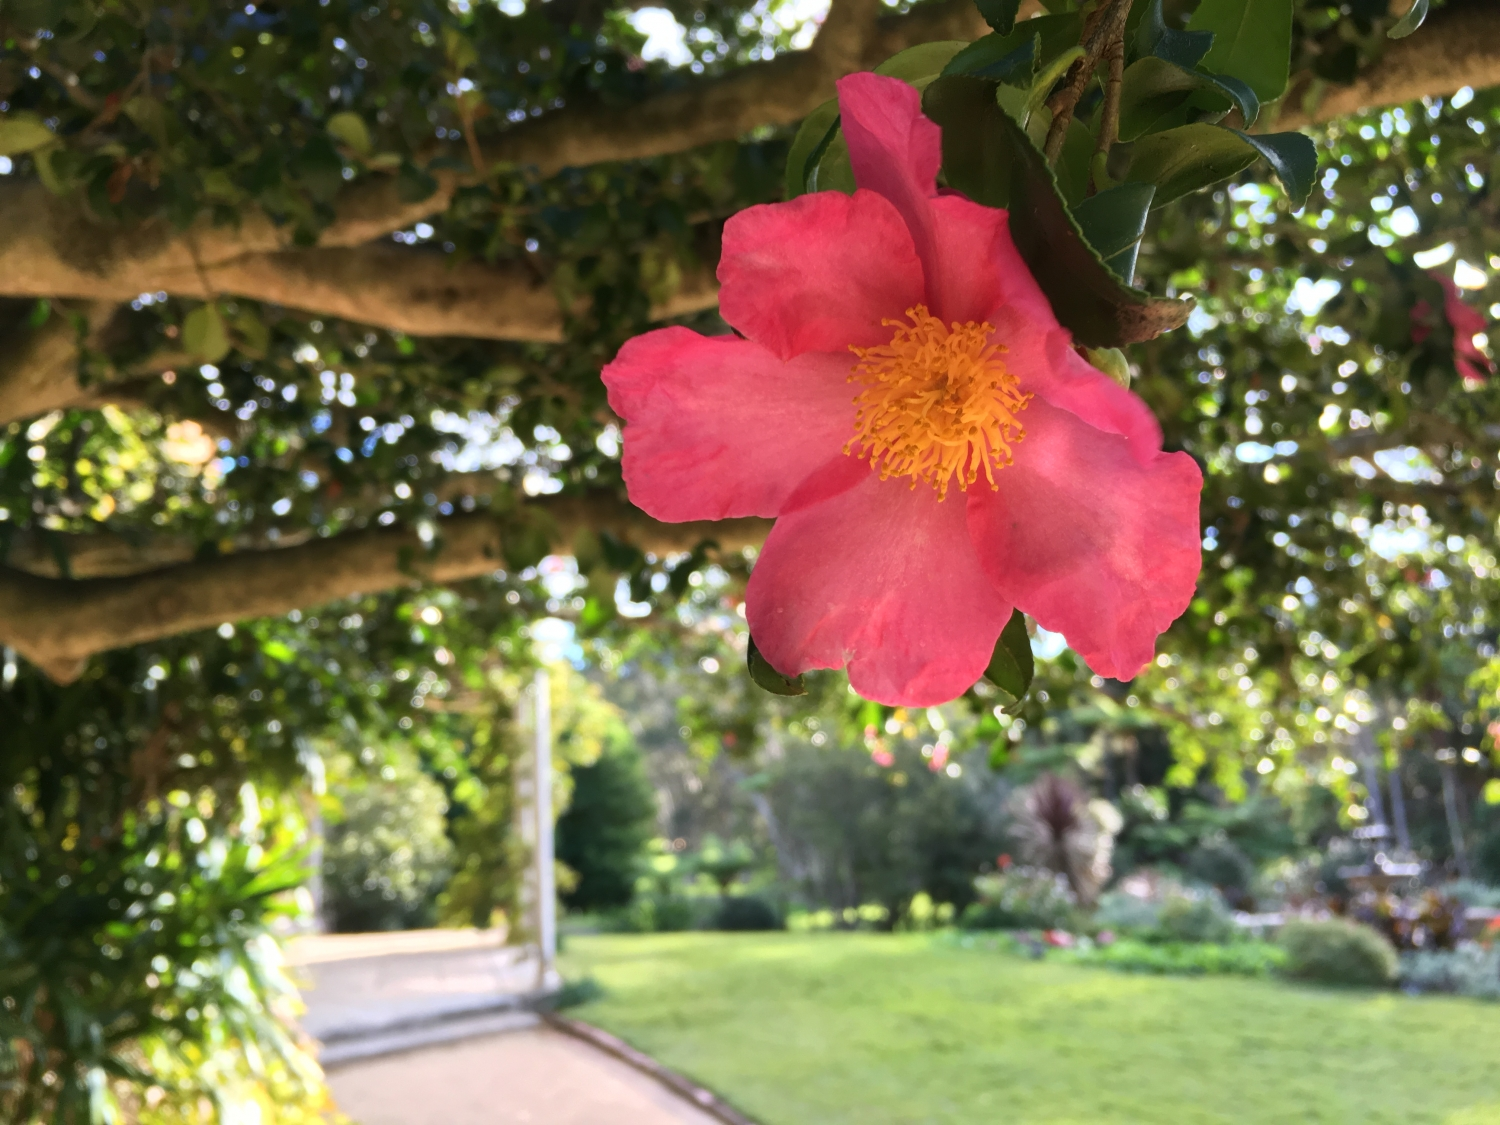 Camellia sasanqua 'Rosea' - the mild pink Camellia with its contrasting yellow stamens at Vaucluse House